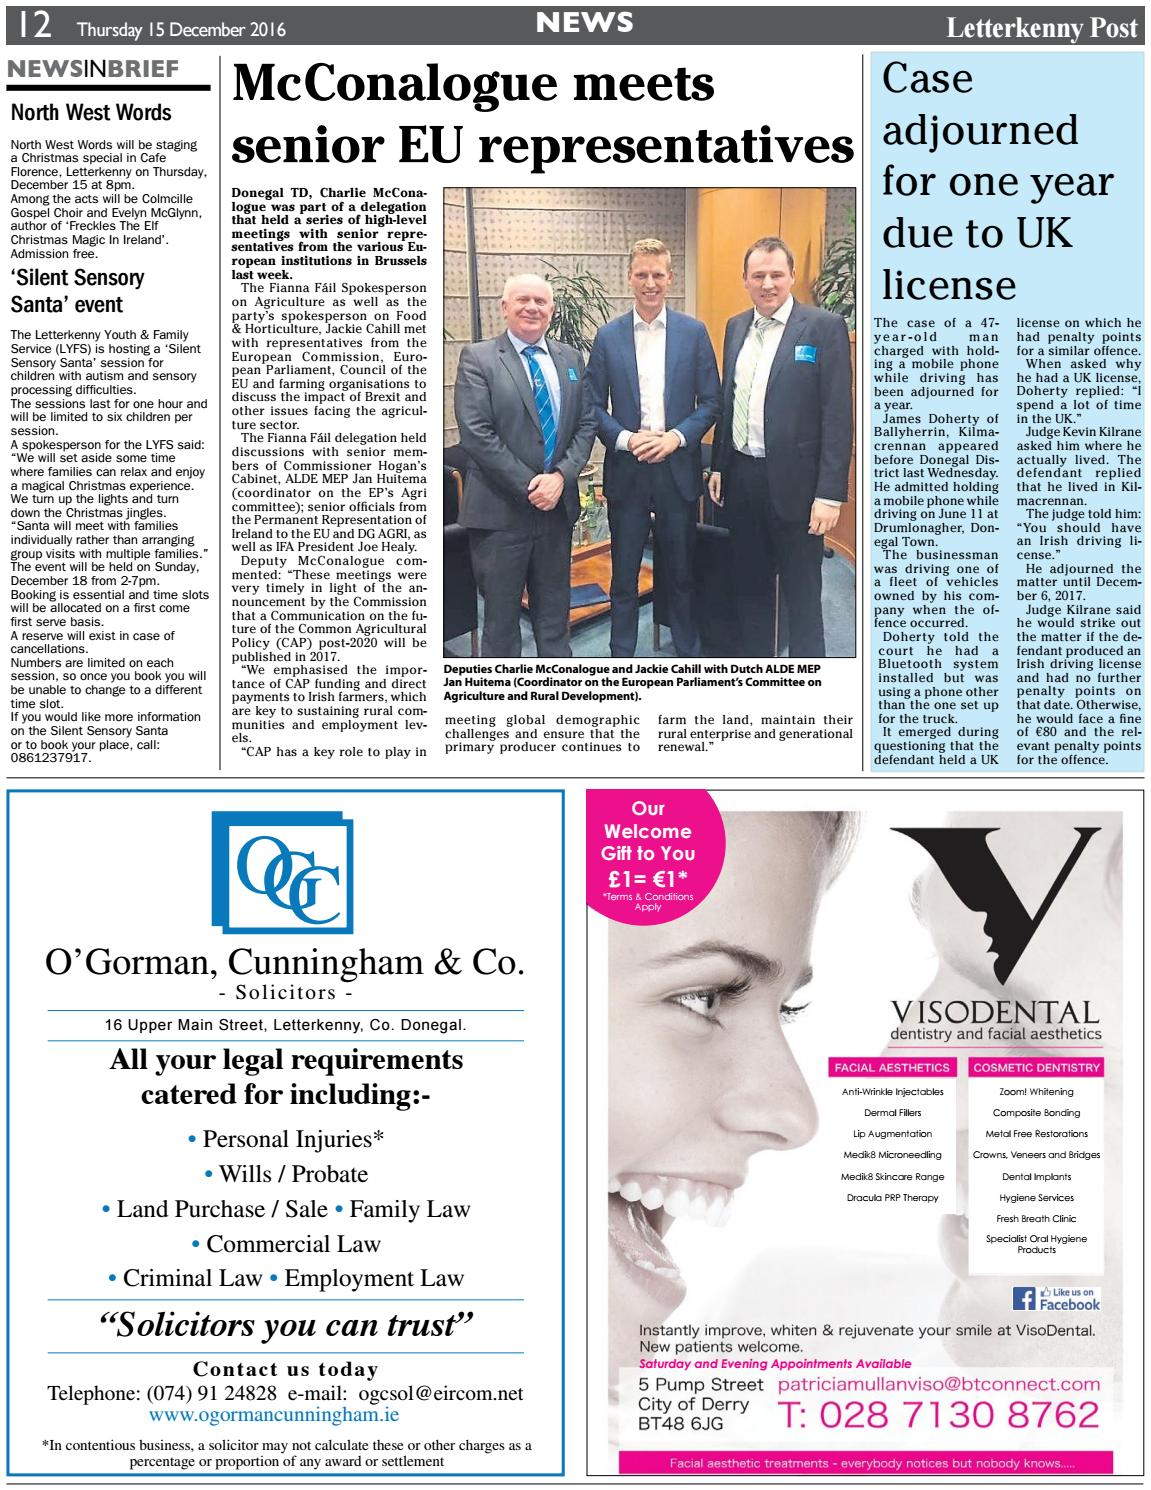 Letterkenny post 15 12 16 by River Media Newspapers - issuu